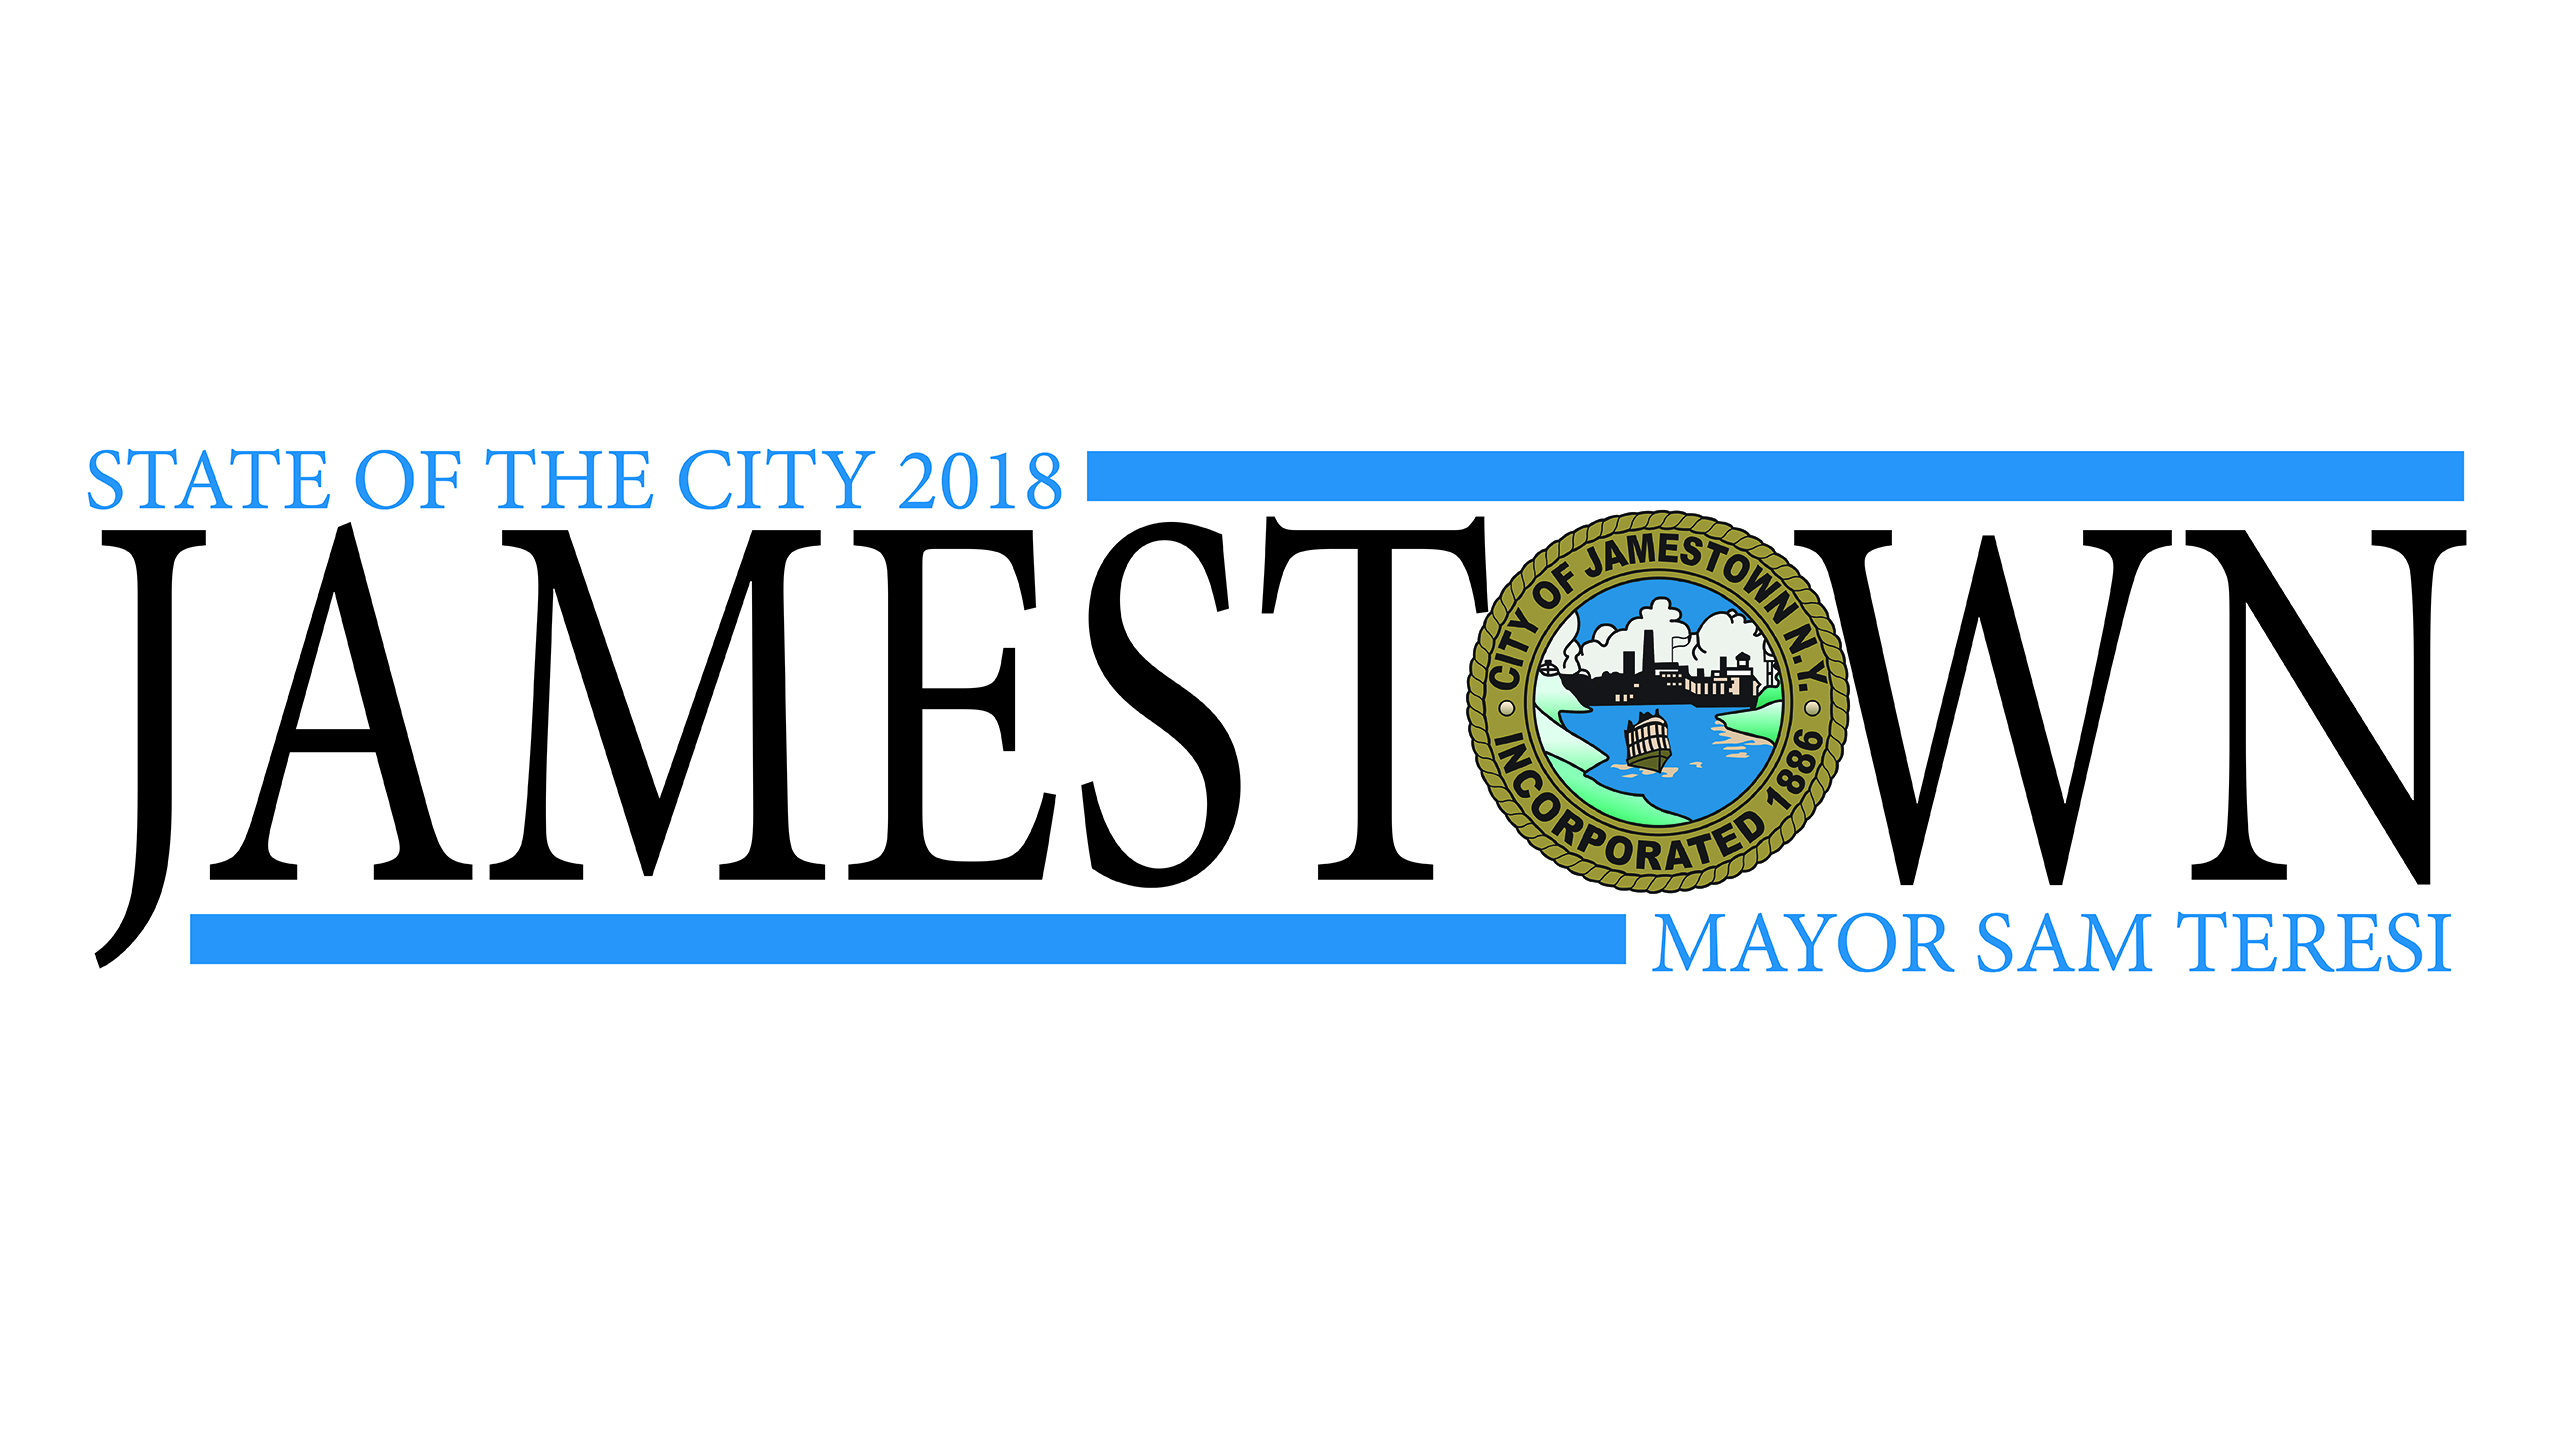 City of Jamestown NY 2018 State of the City